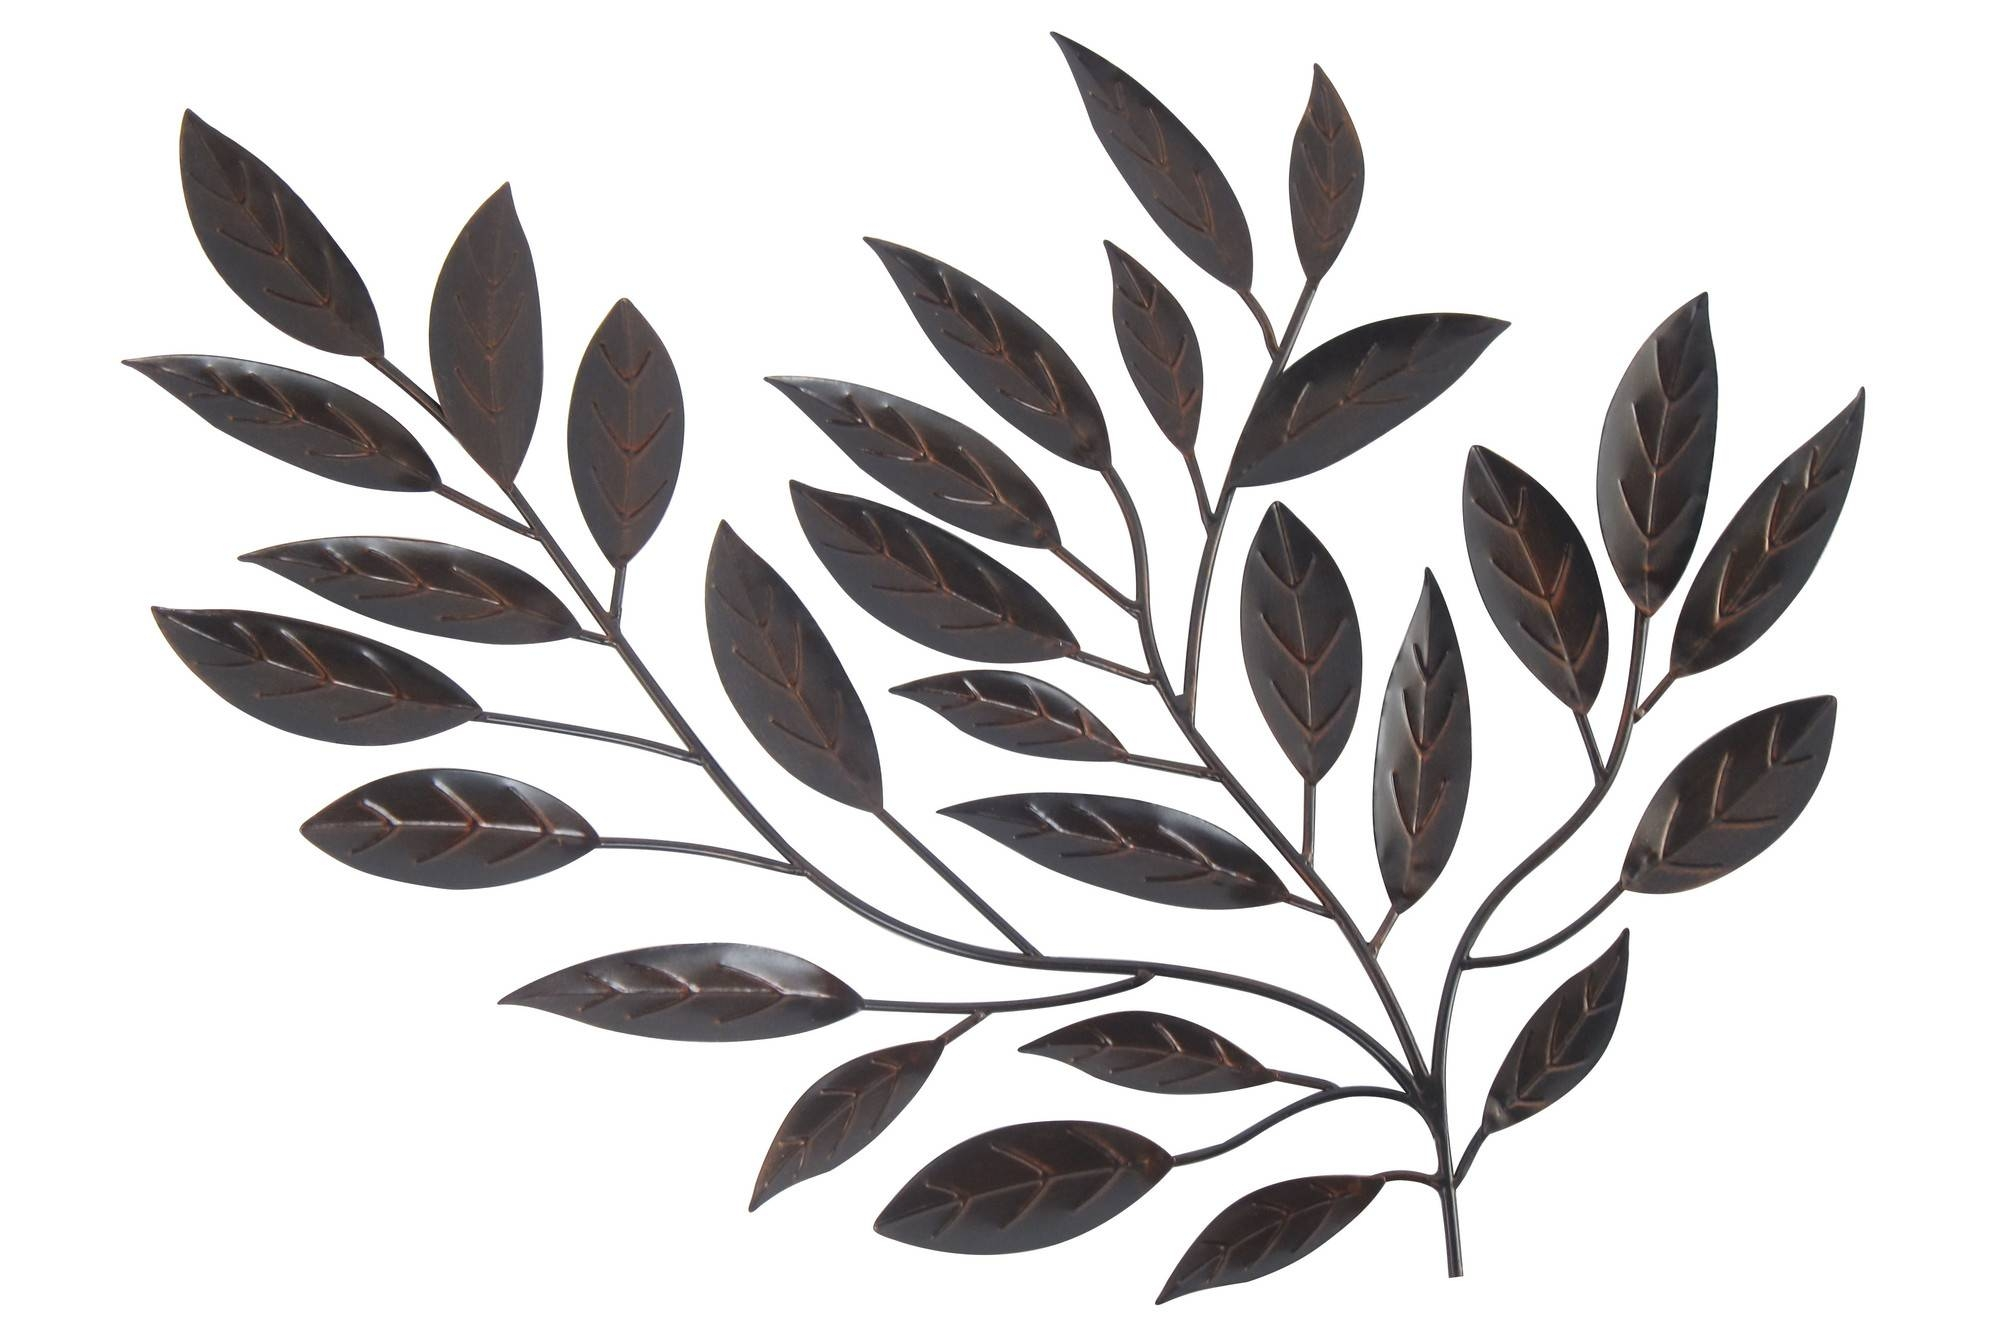 Forged Metal Leaves – Floral Metal Wall Art In Most Current Leaves Metal Wall Art (View 7 of 20)